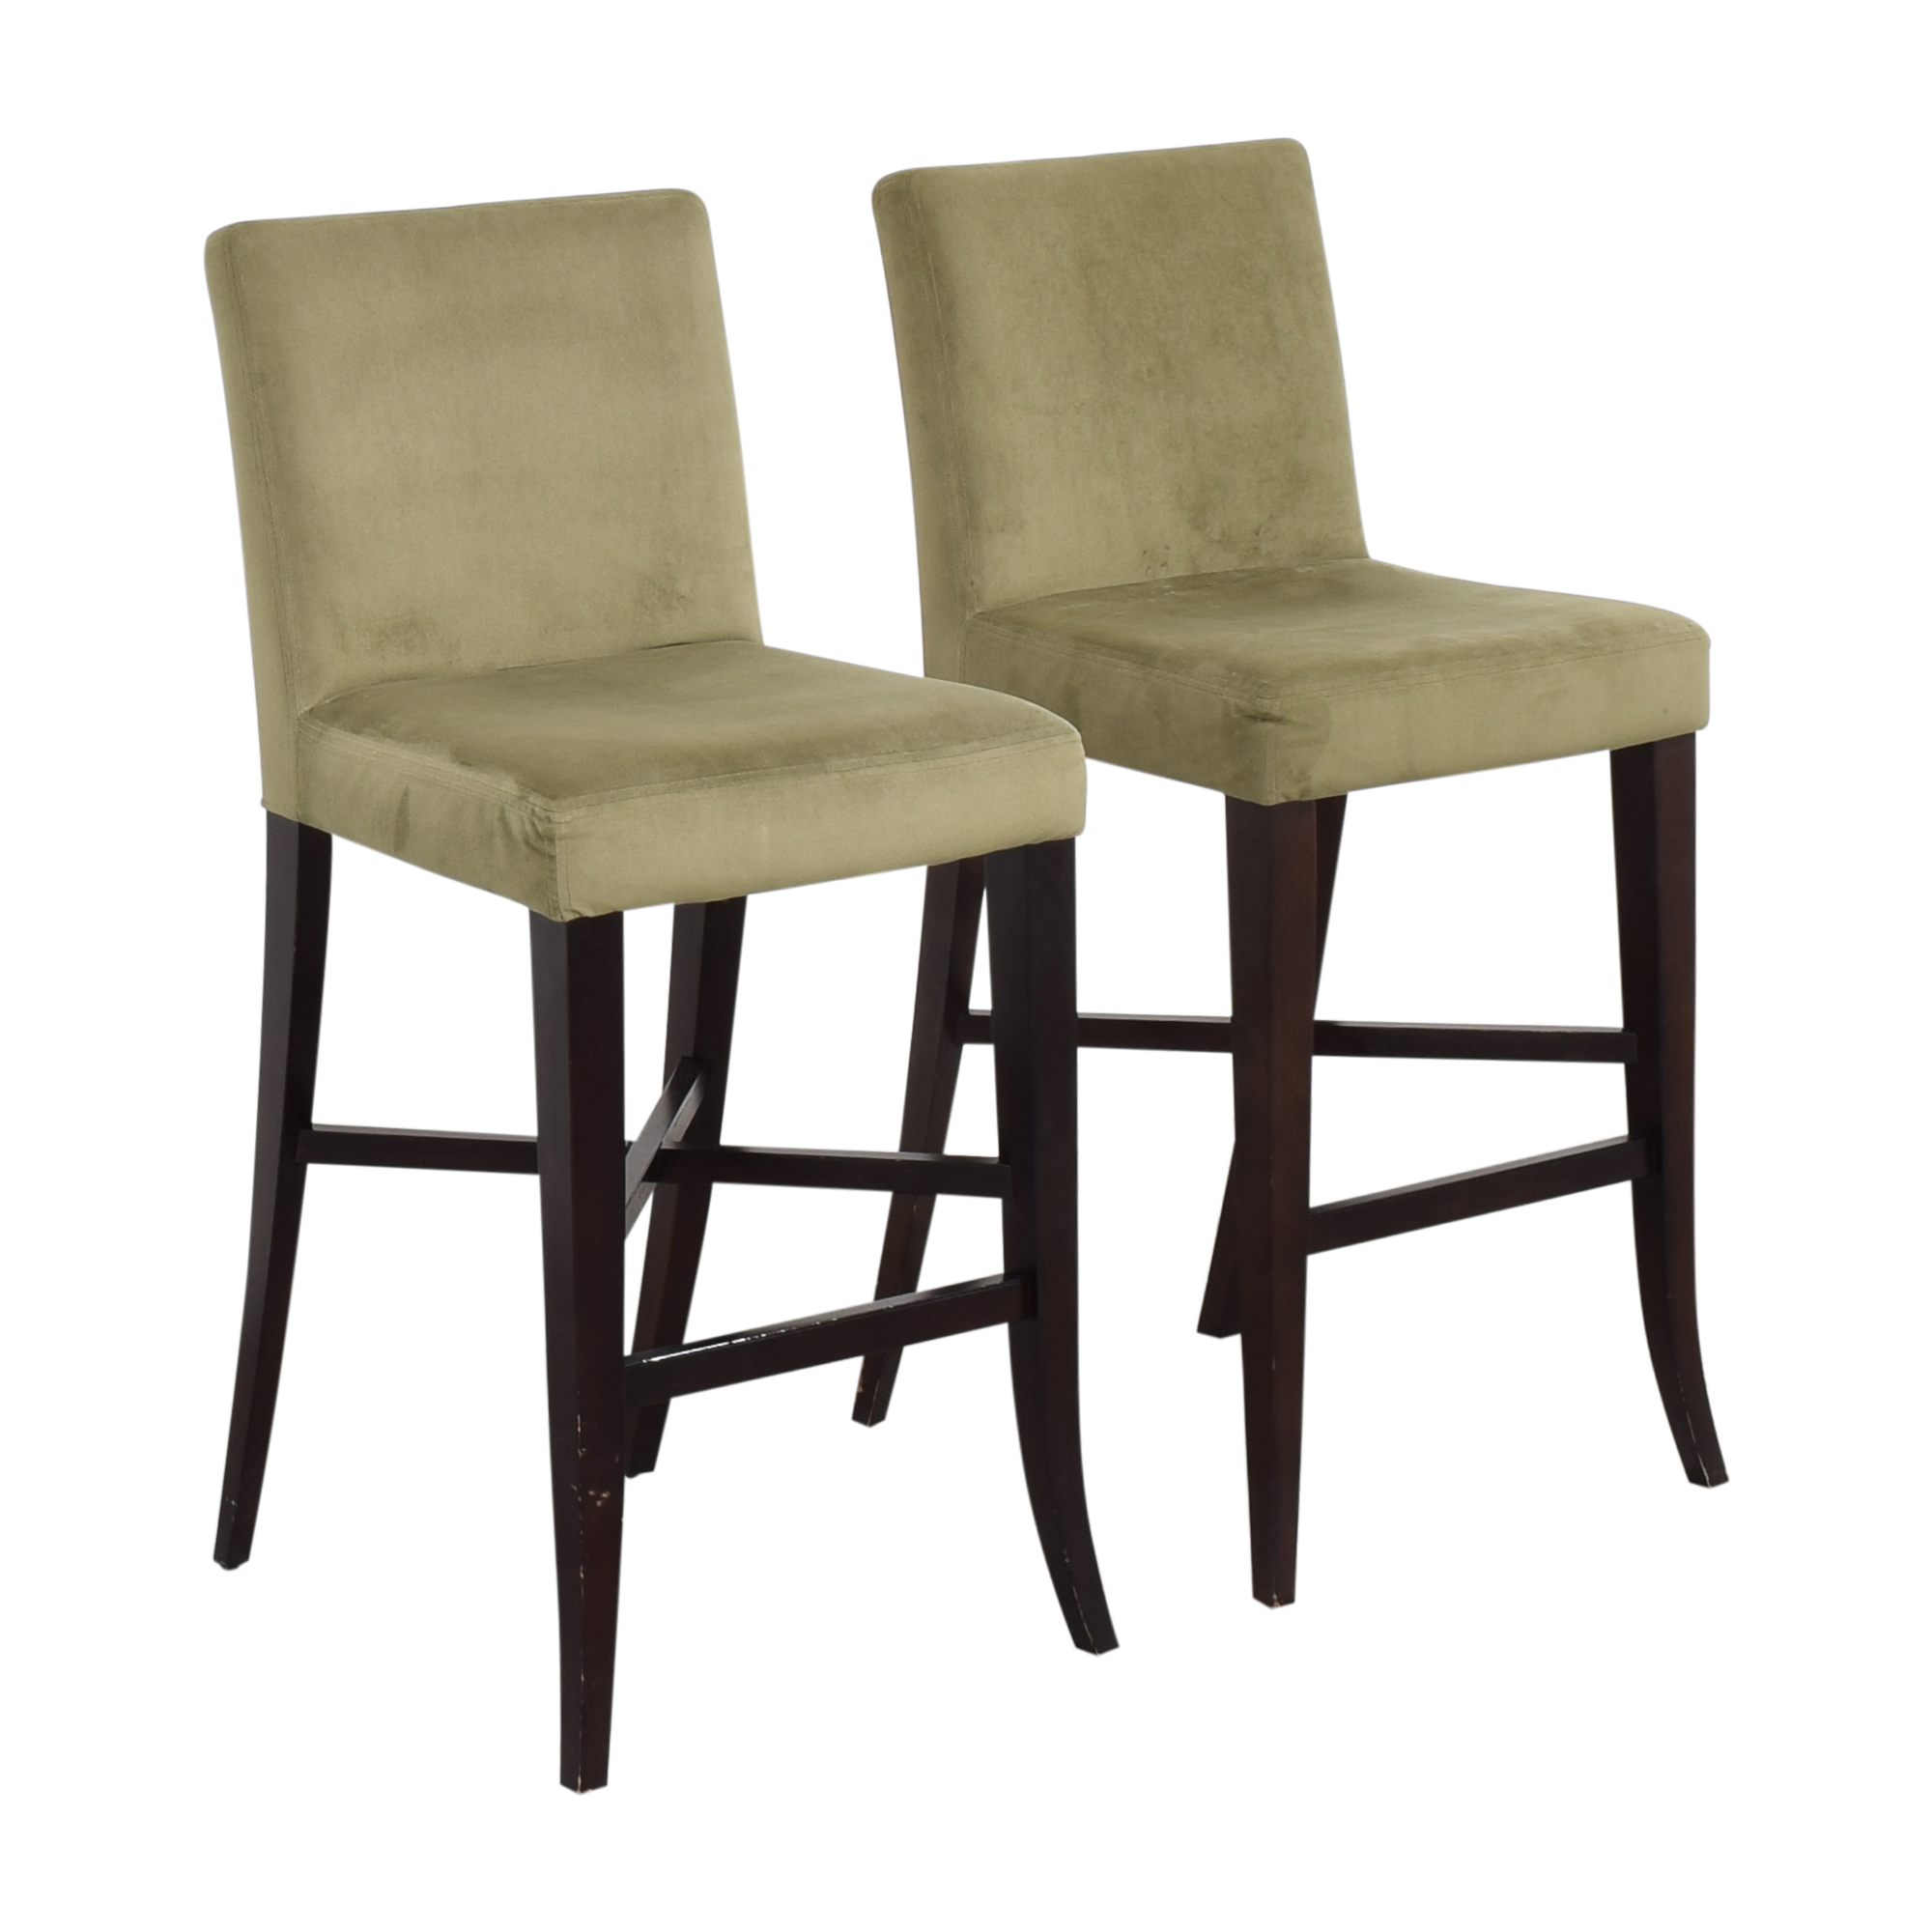 Crate & Barrel Crate & Barrel Upholstered Bar Stools Stools